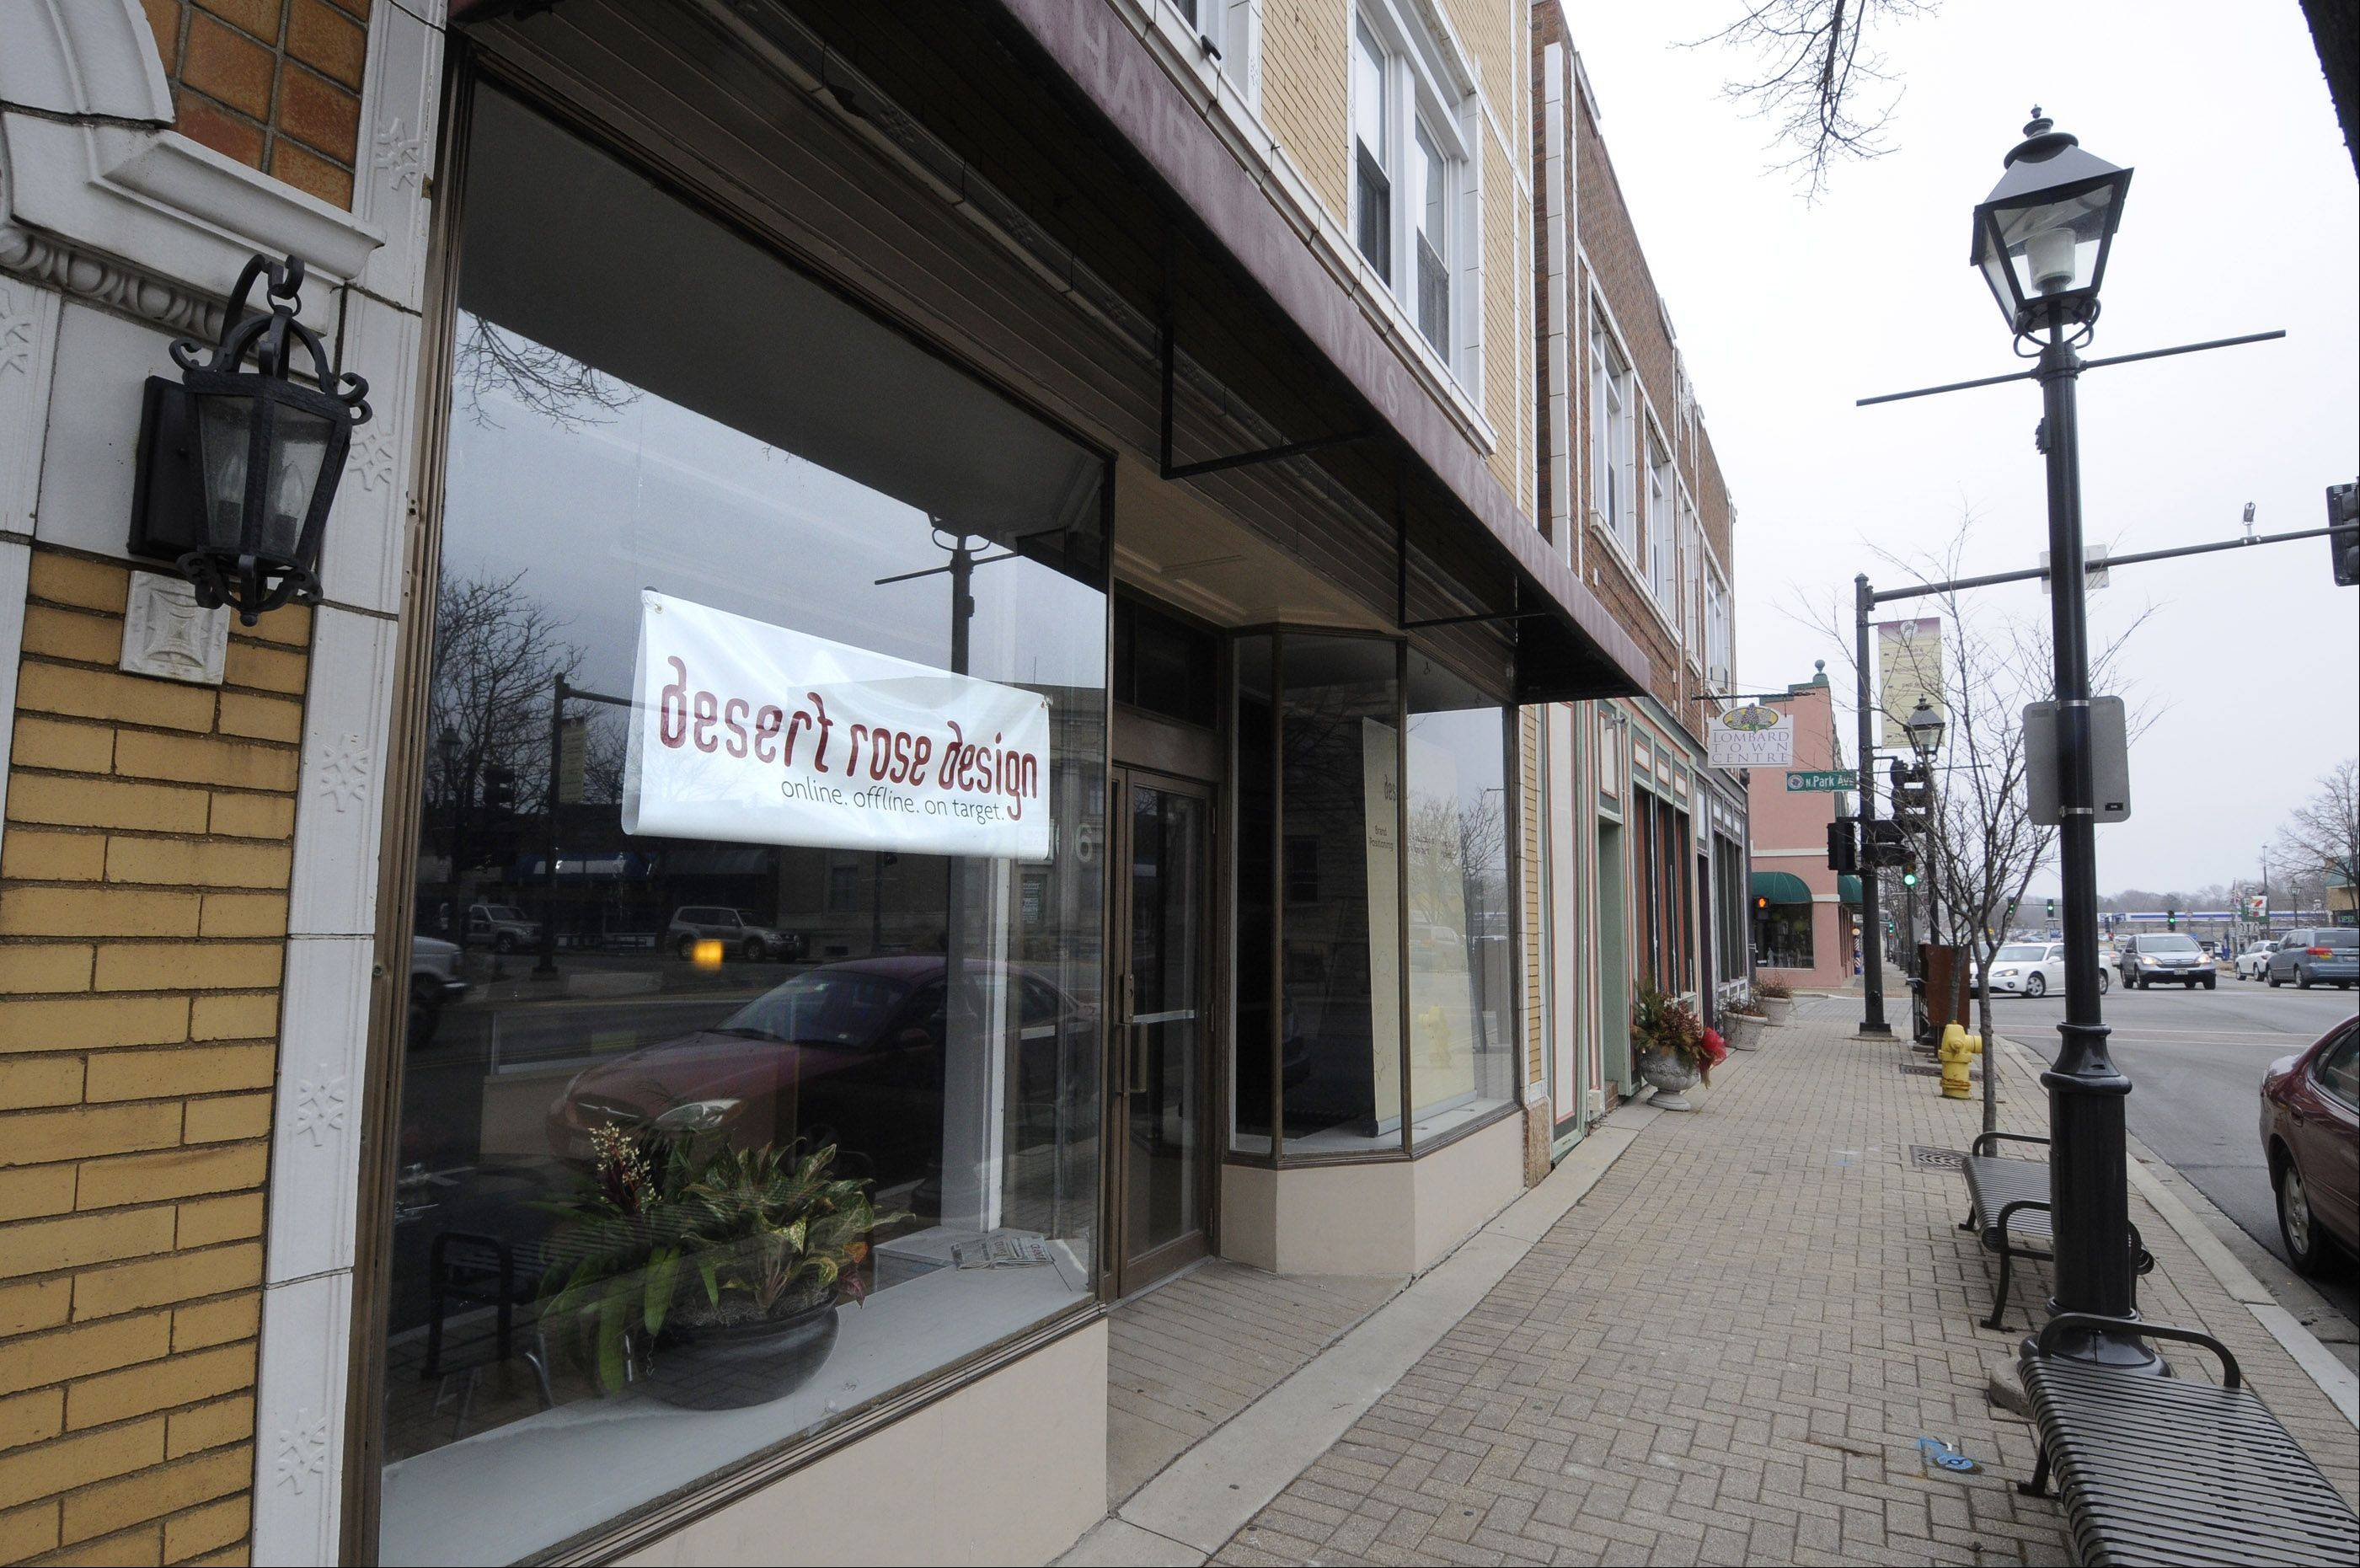 Desert Rose Design is a new business that has moved into a renovated space in downtown Lombard.